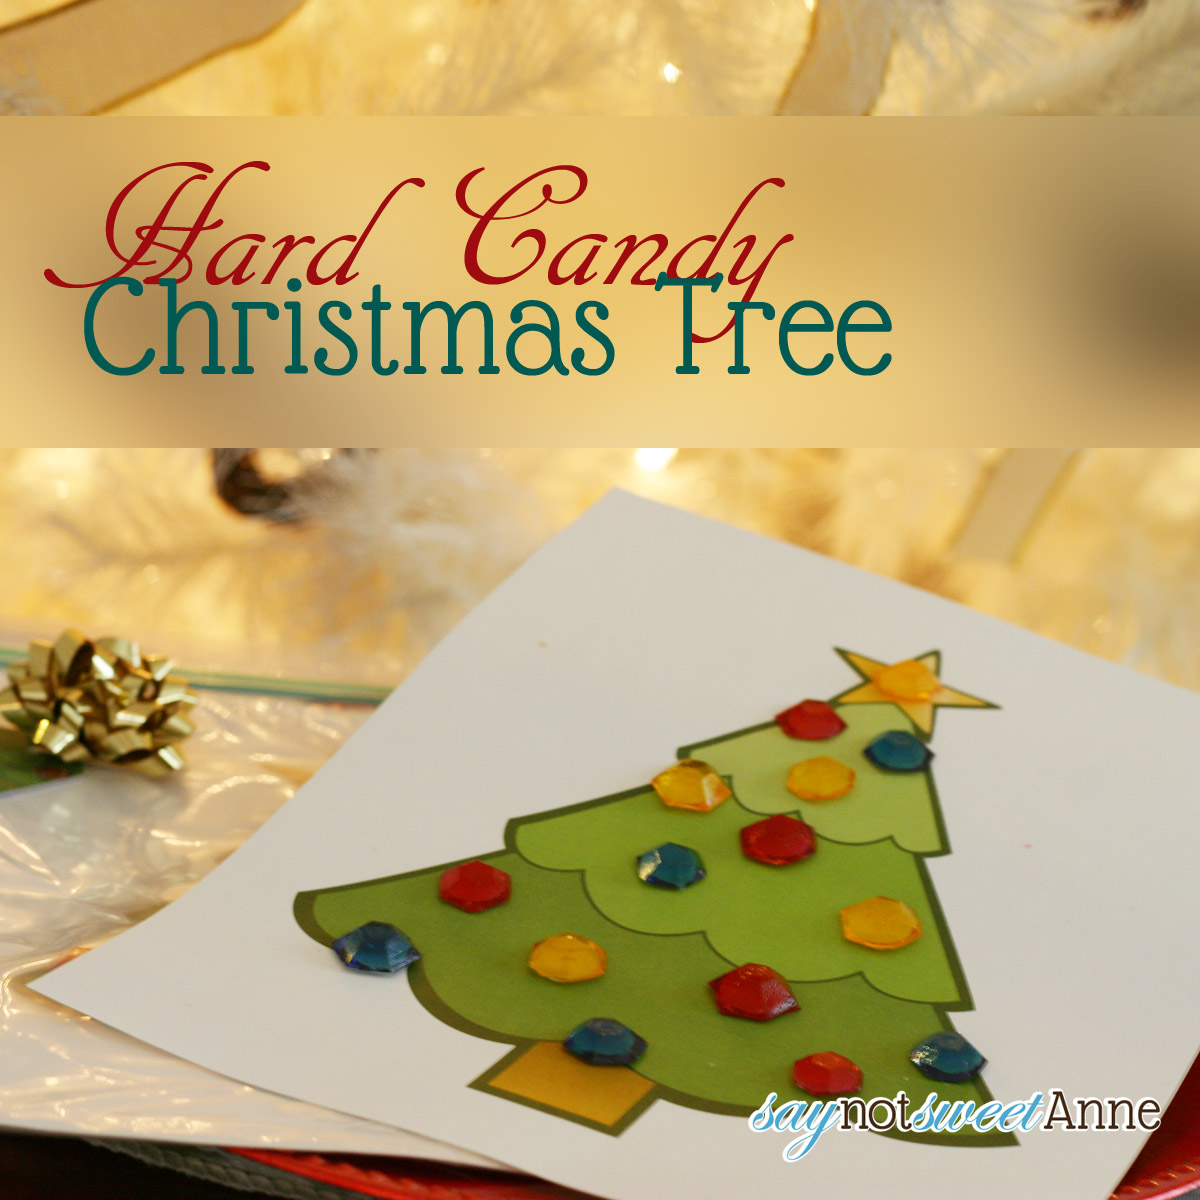 Hard Candy Christmas Tree